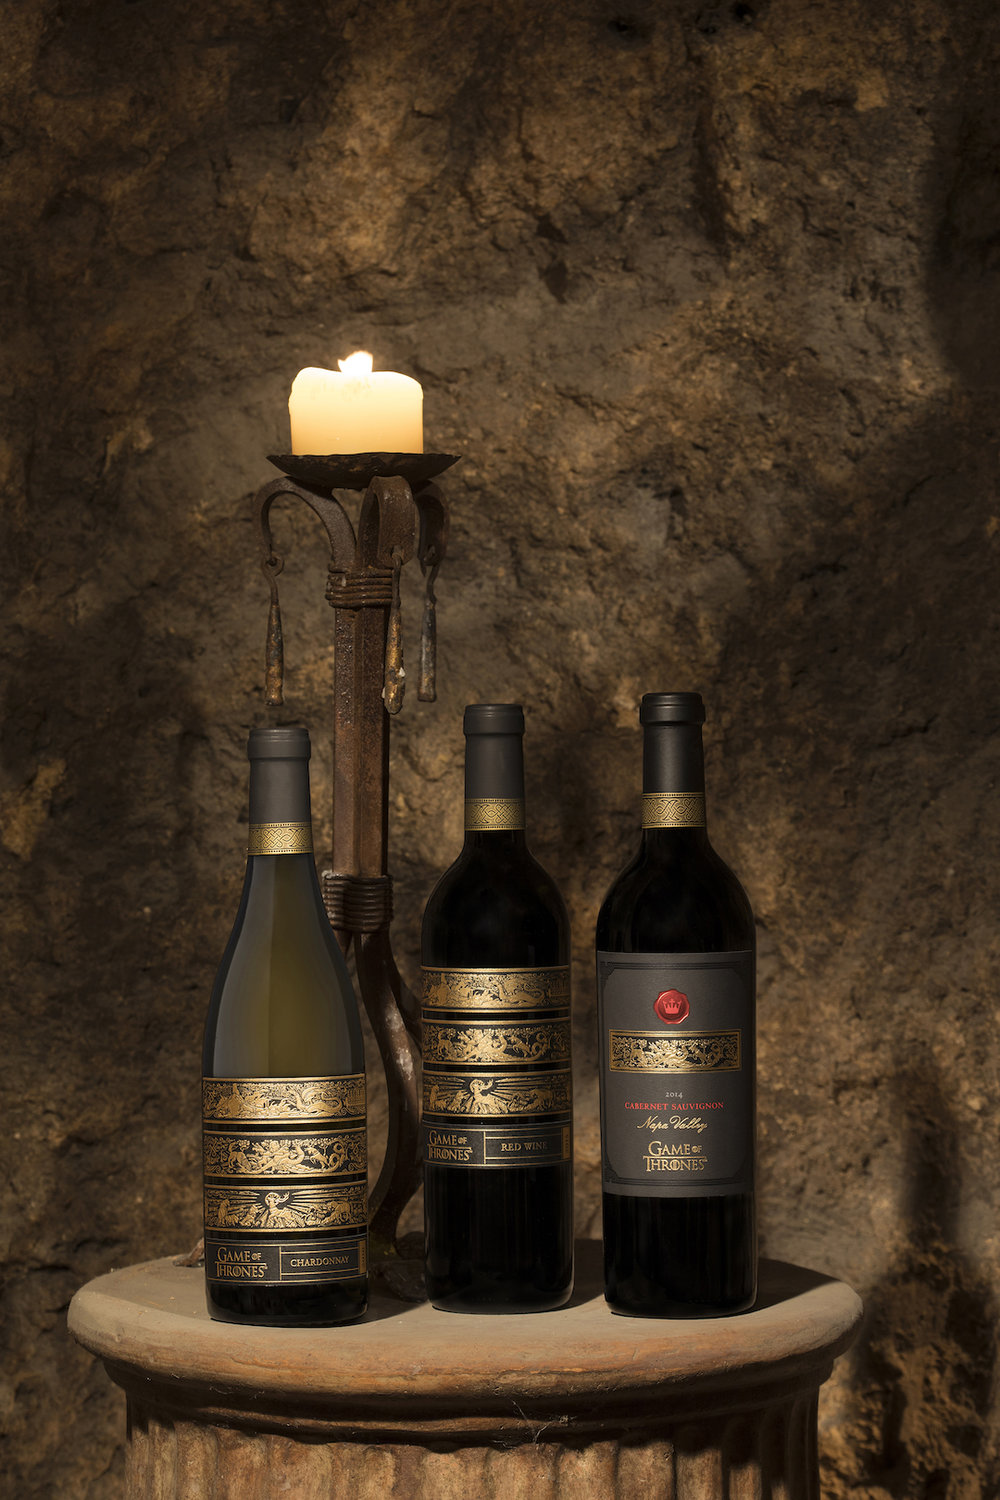 The just released trio of Game of Thrones wines from the western kingdom of California.